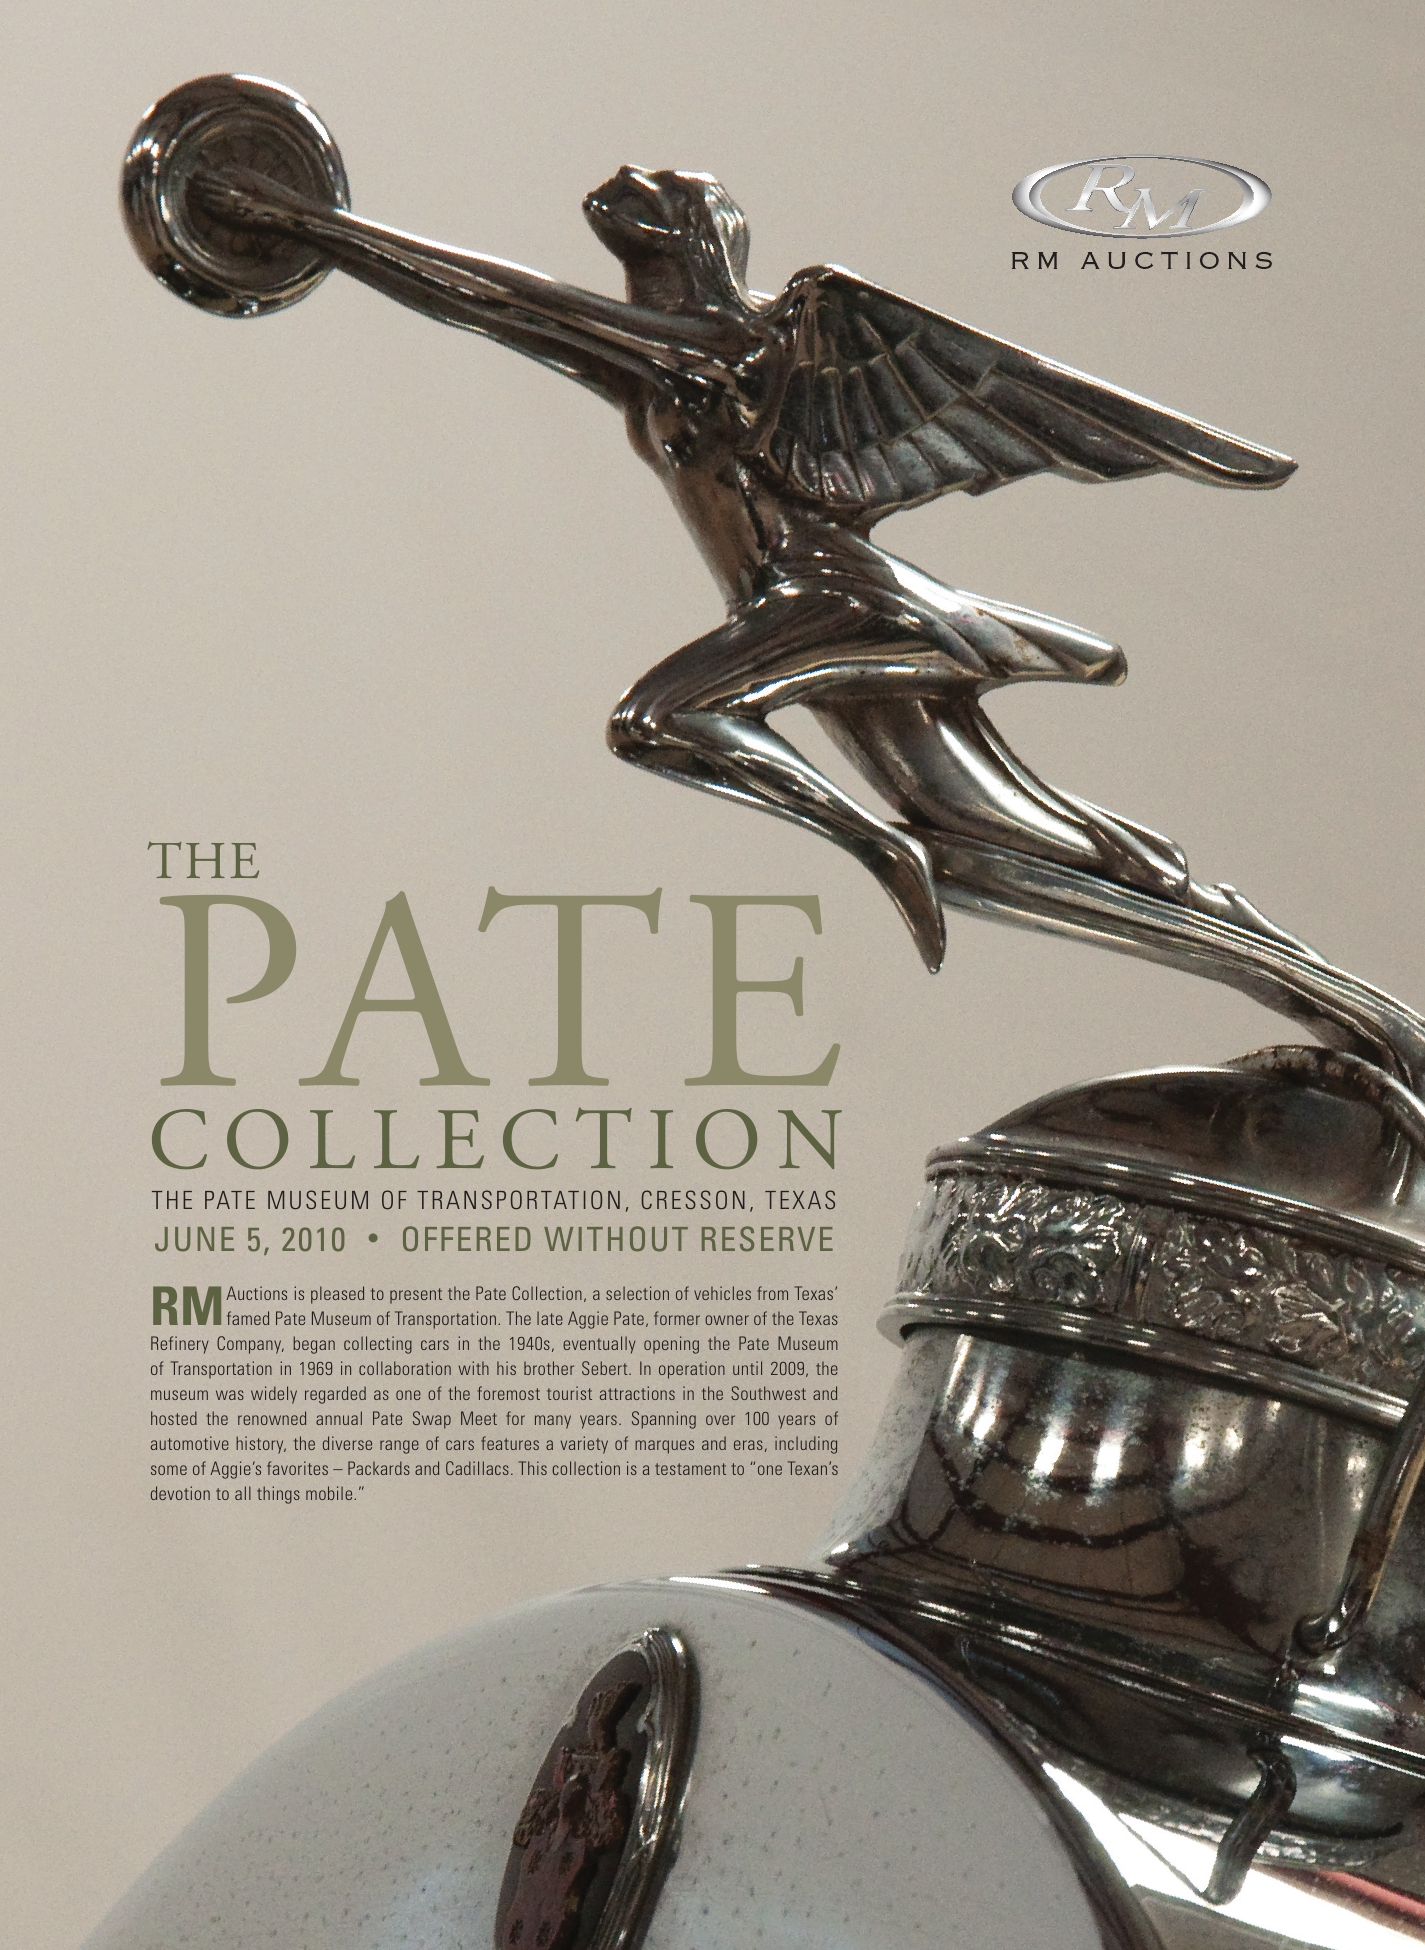 The Pate Collection